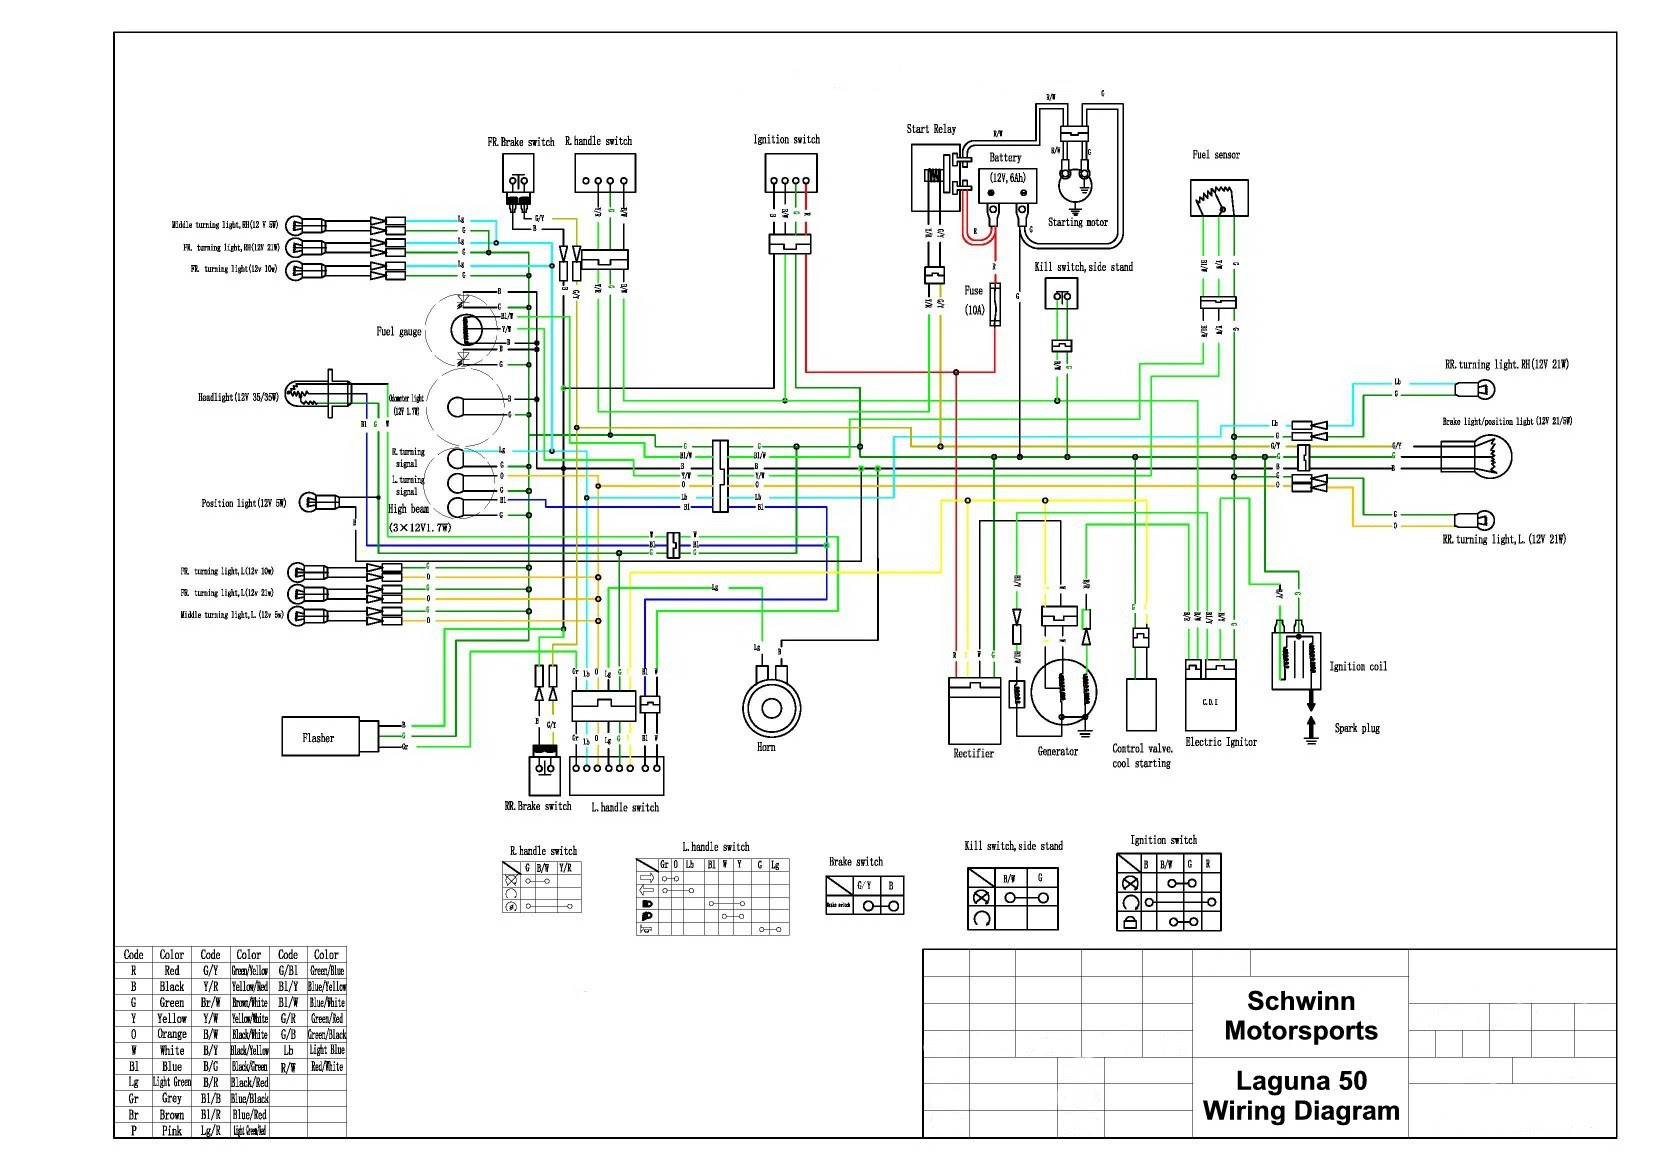 Ice Bear Scooter Wiring Diagram from lh5.googleusercontent.com